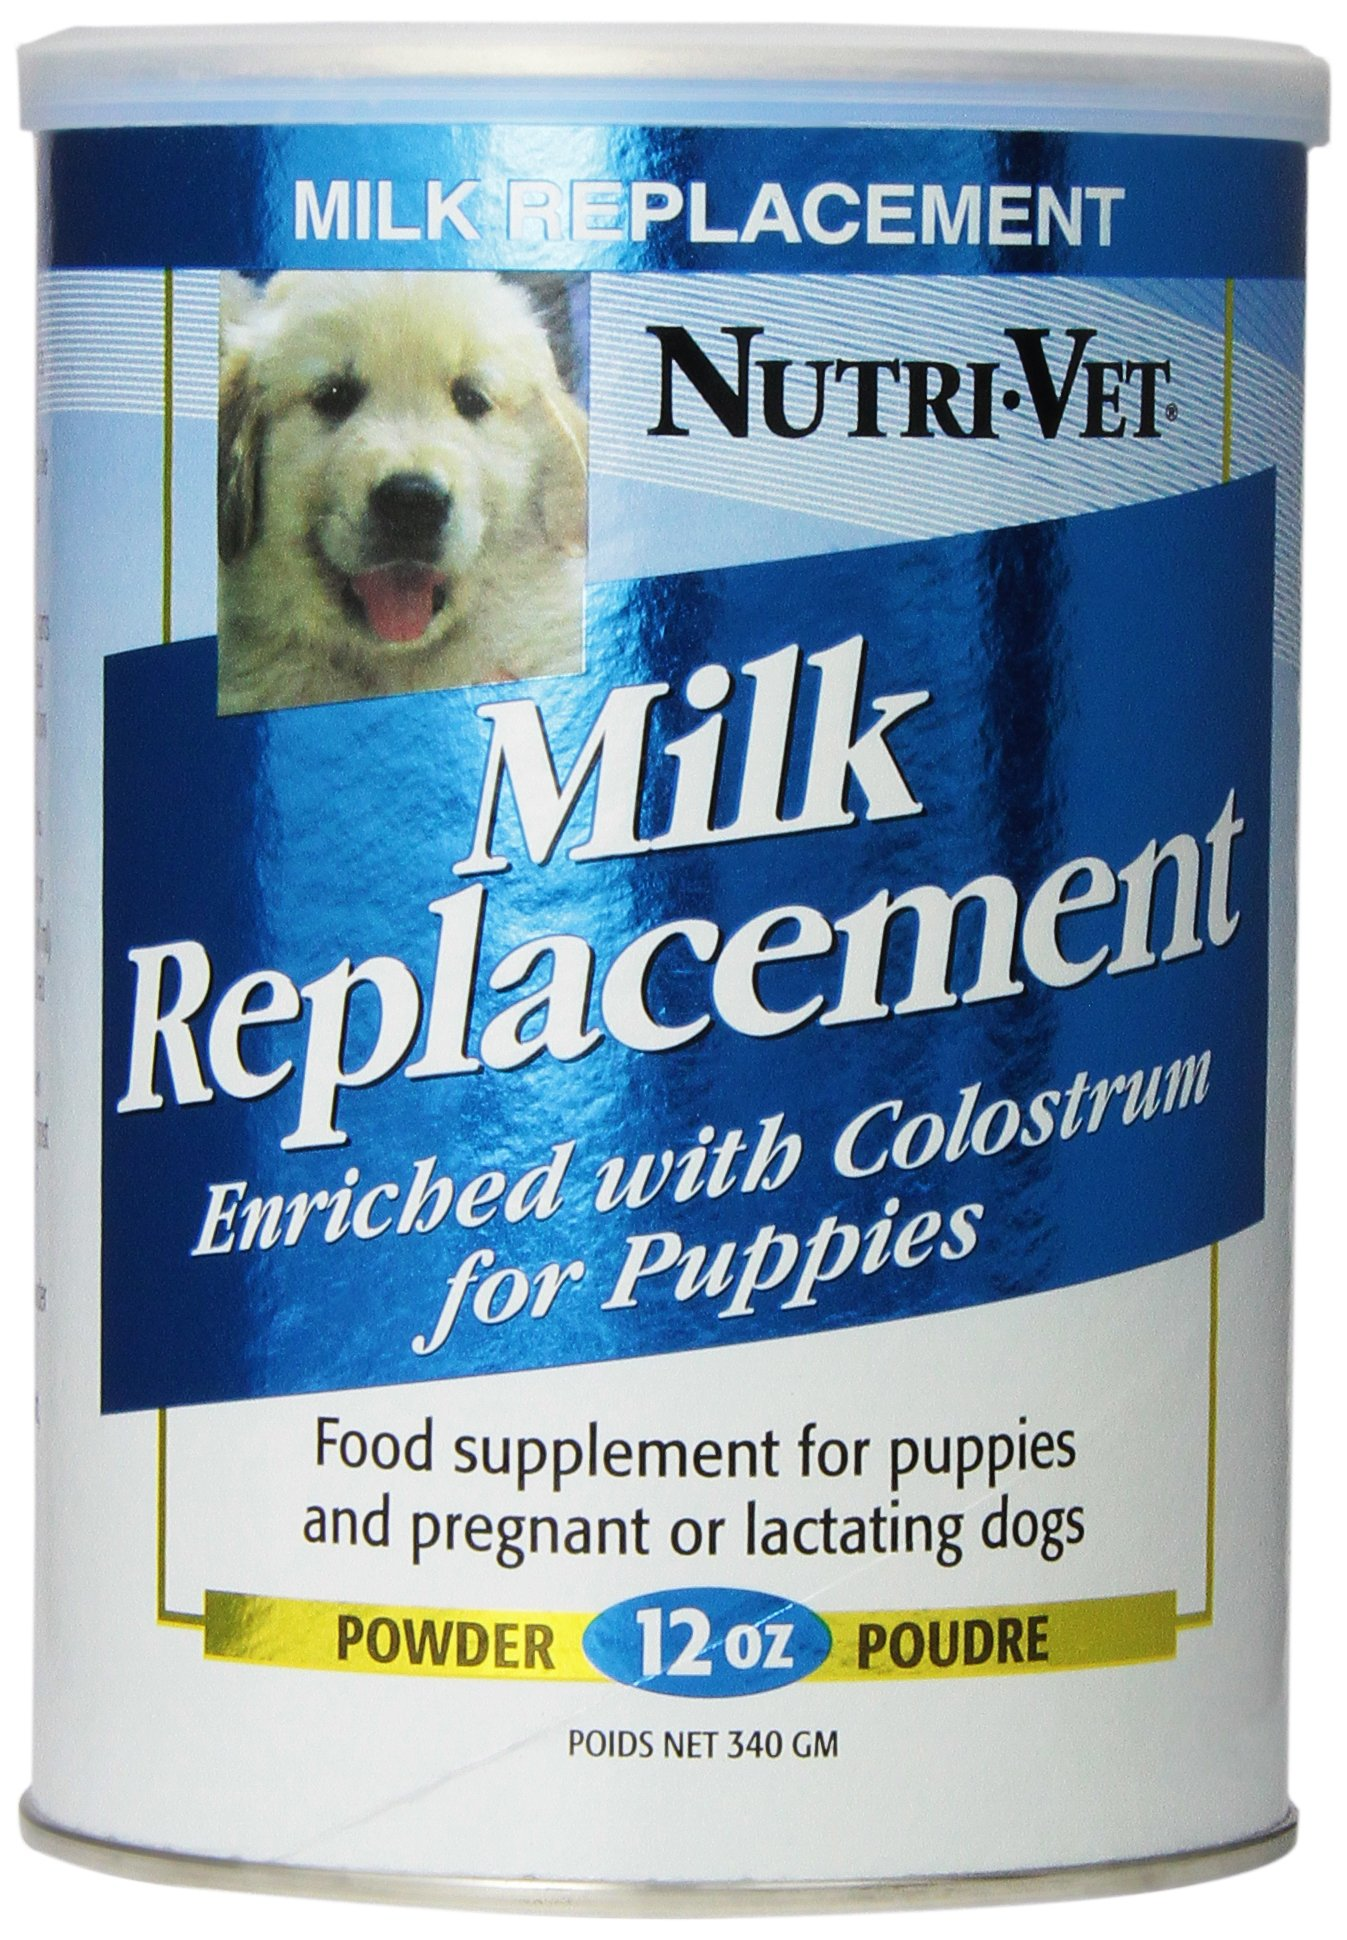 Nutri-Vet Milk Replacement Powder for Puppies (Pack of 1) by Nutri-Vet